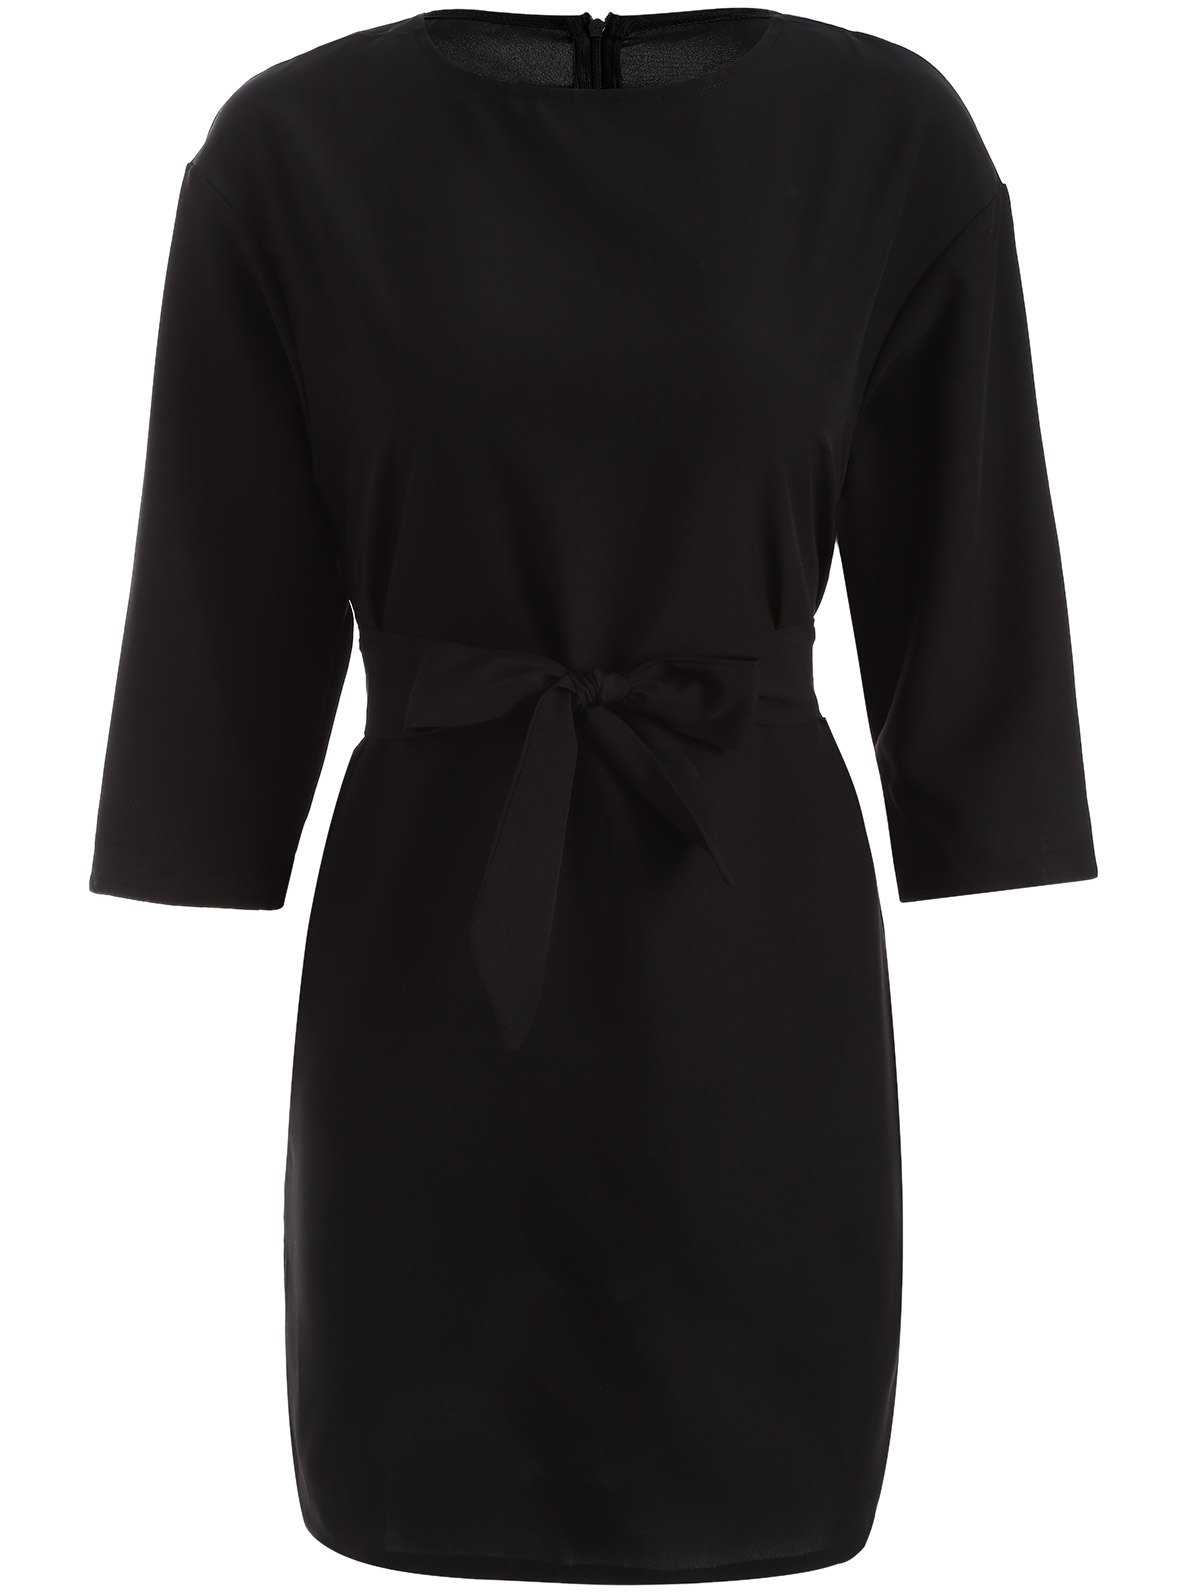 Slimming 3/4 Sleeve A-Line Dress - BLACK 2XL